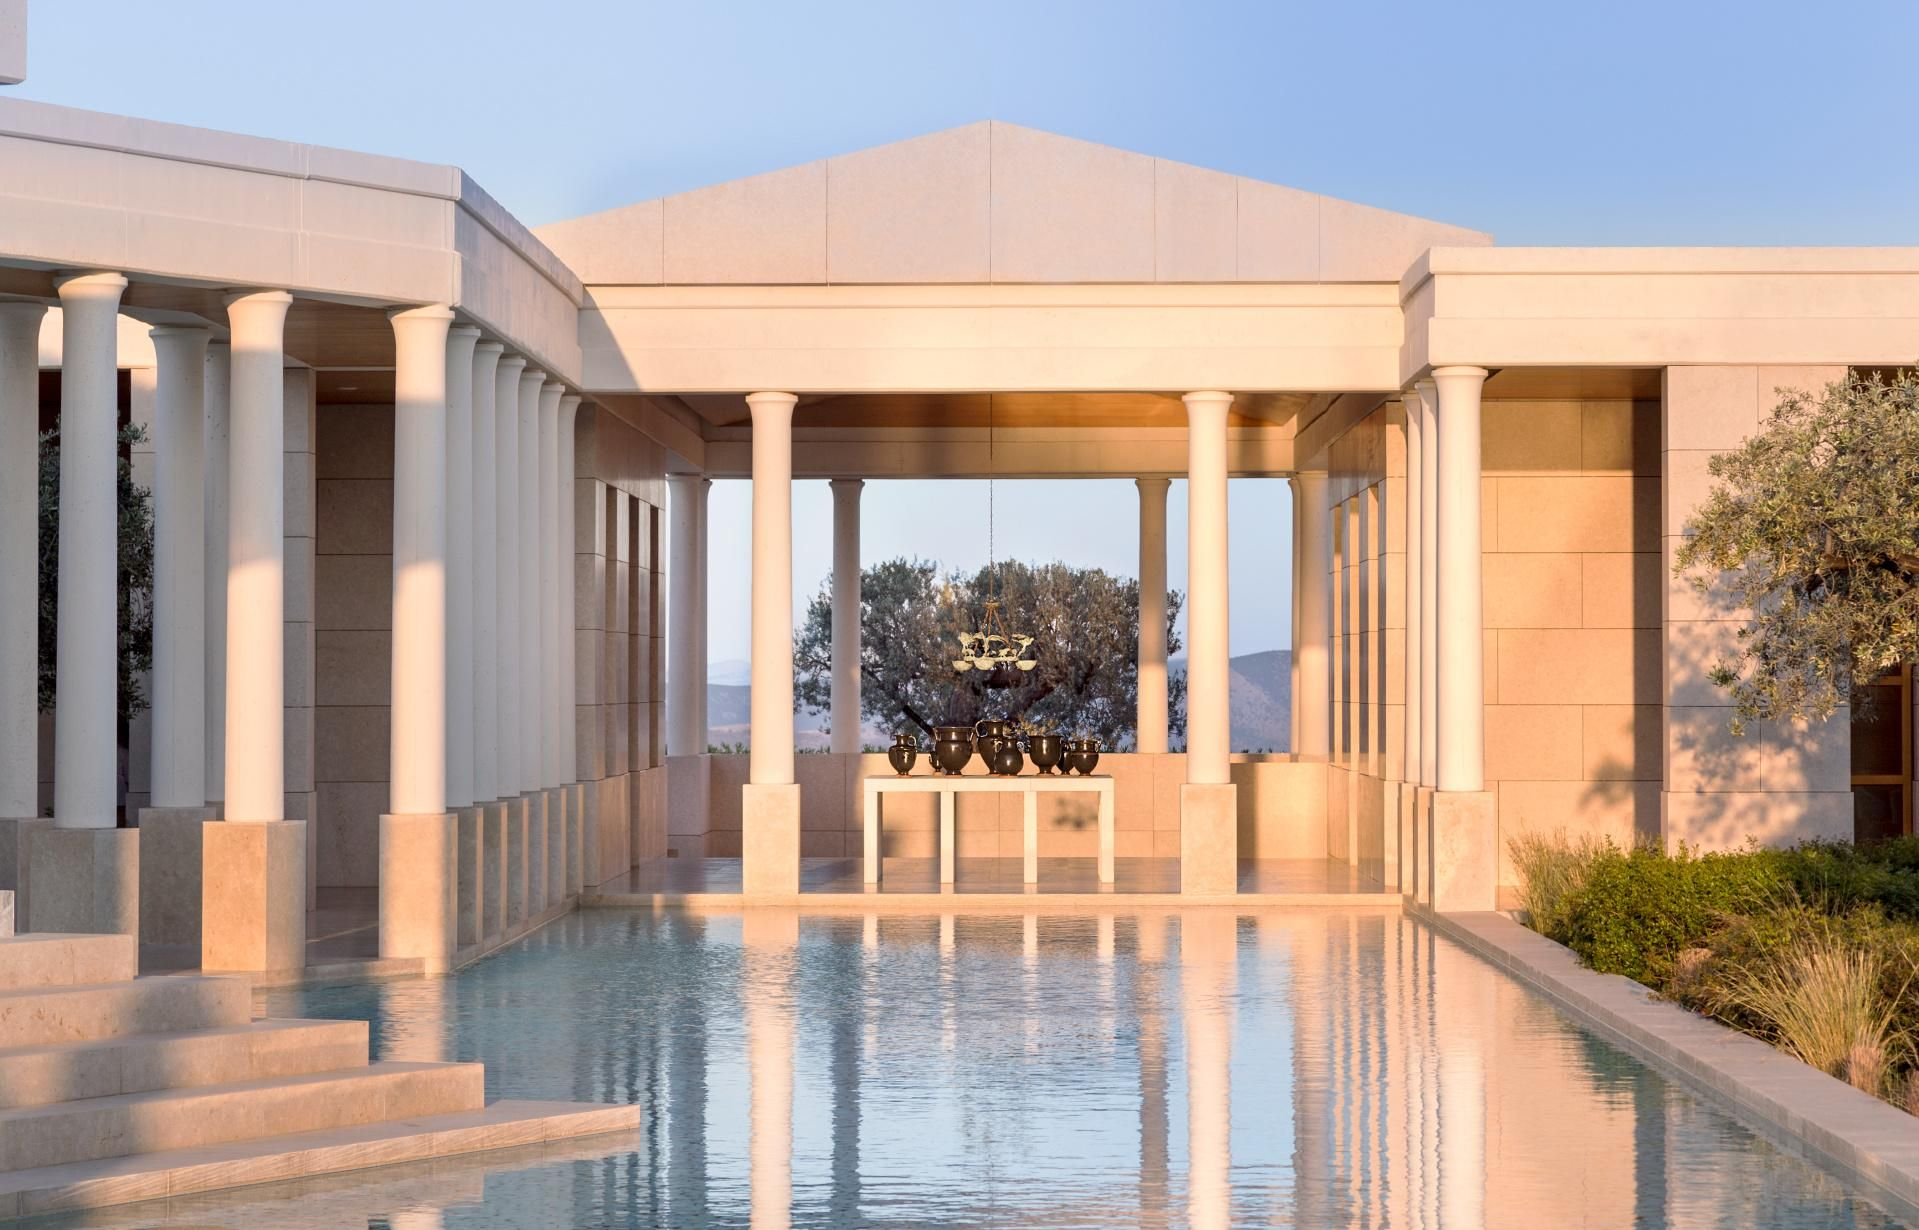 The Amanzoe comprises of a hilltop complex overlooking olive groves and with a backdrop of mountains seen across a cobalt-blue bay, 10 minutes by water taxi from the pretty yachting village of Porto Heli.   Truly feel like a VIP when you book with Travel with Terra and get these Exclusive Terra Perks -   ** Continental Breakfast for two daily in the Dining room or Room Service  ** $100USD Hotel credit, per room, per stay